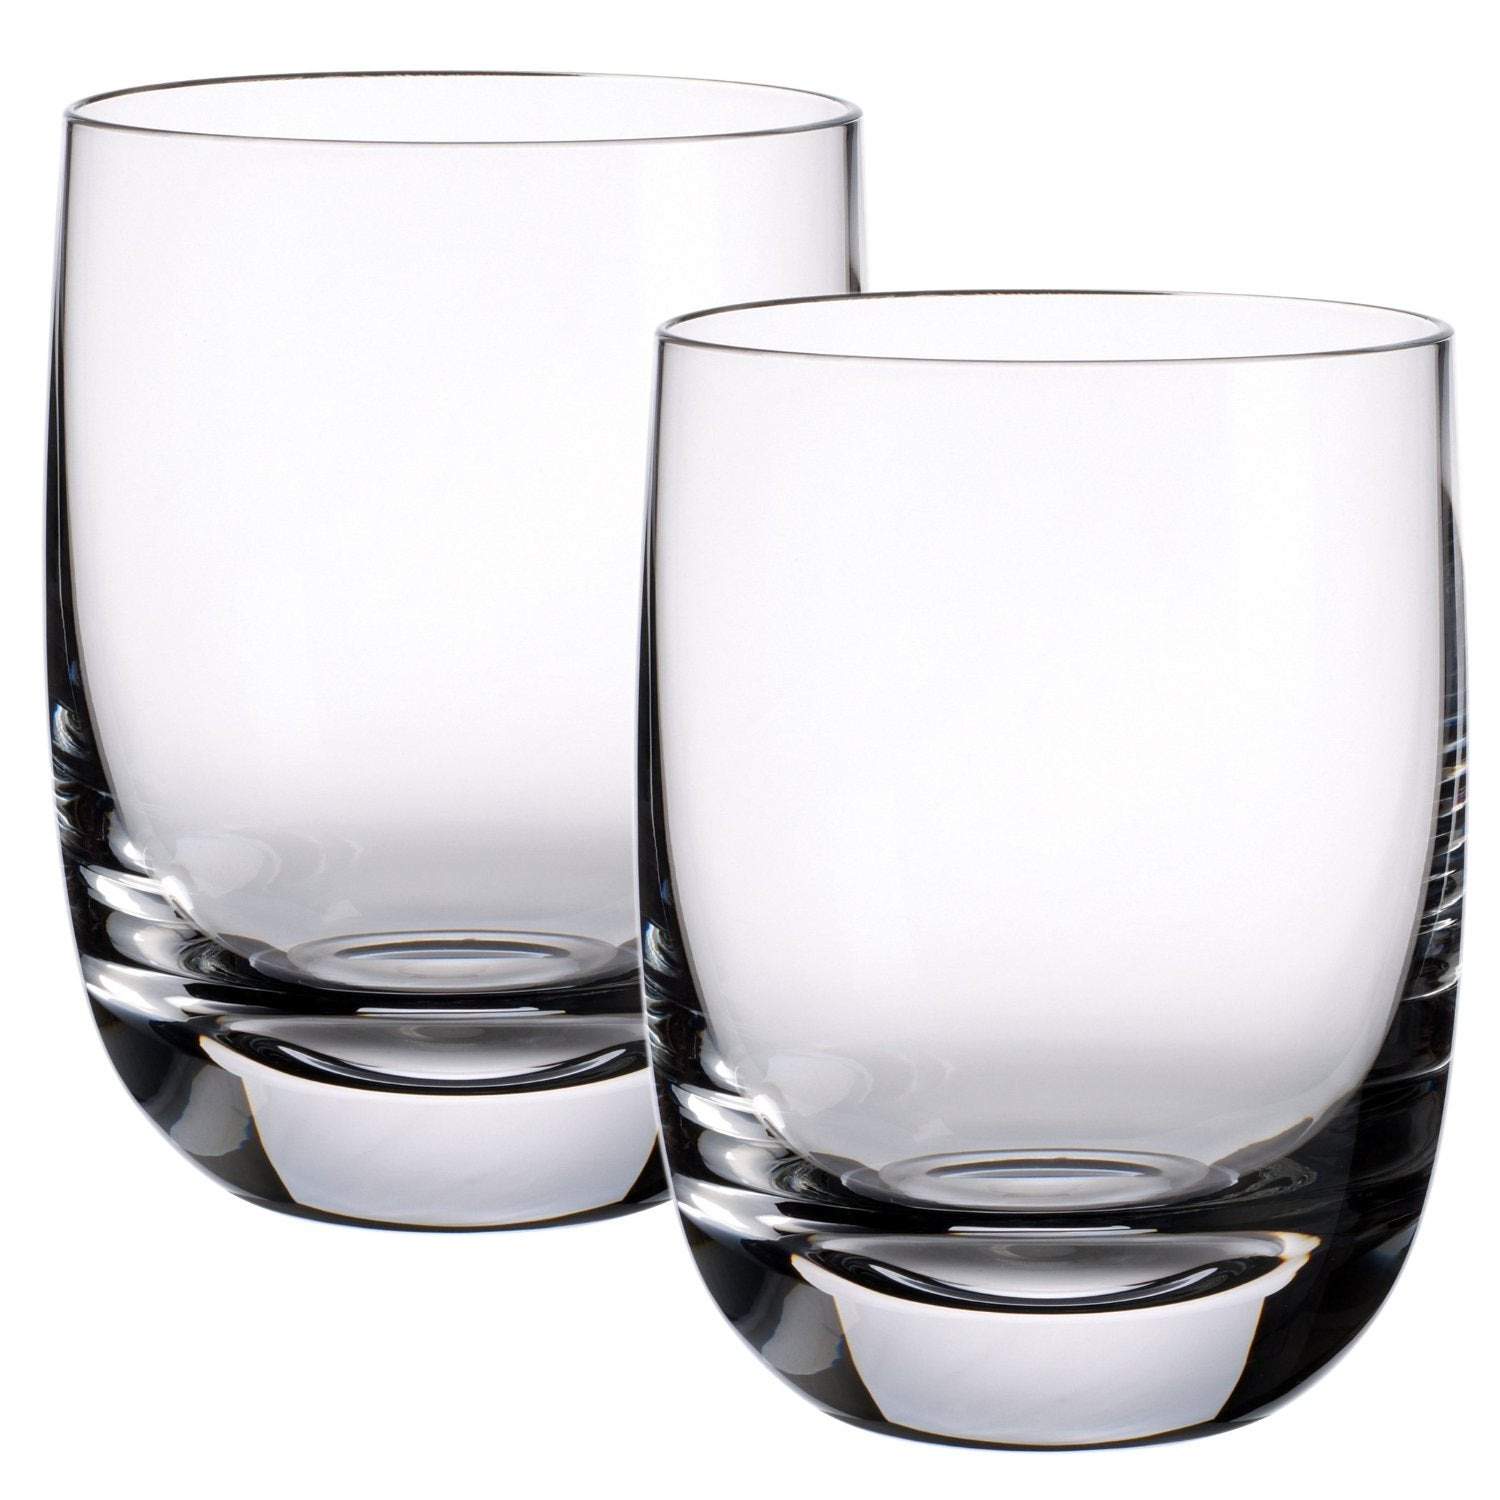 Villeroy & Boch Scotch Whiskey Blended Scotch 4-1/2-Inch Tumbler No 3, Set of 2